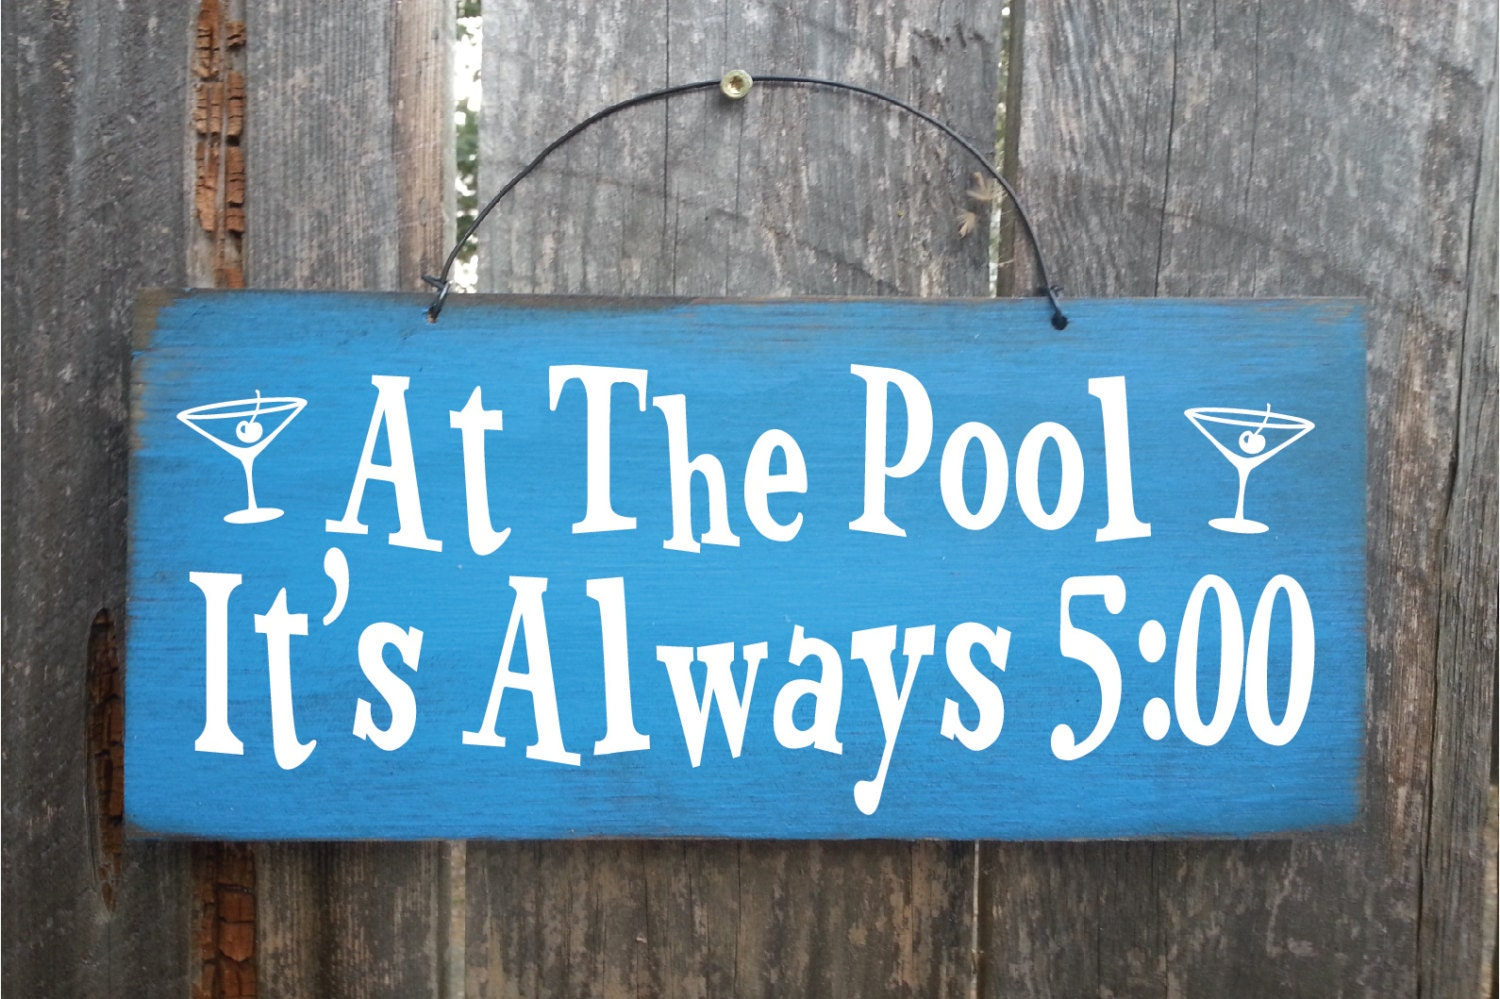 pool signs pool decor pool decorations swimming pool signs patio decor outdoor decor 141 227